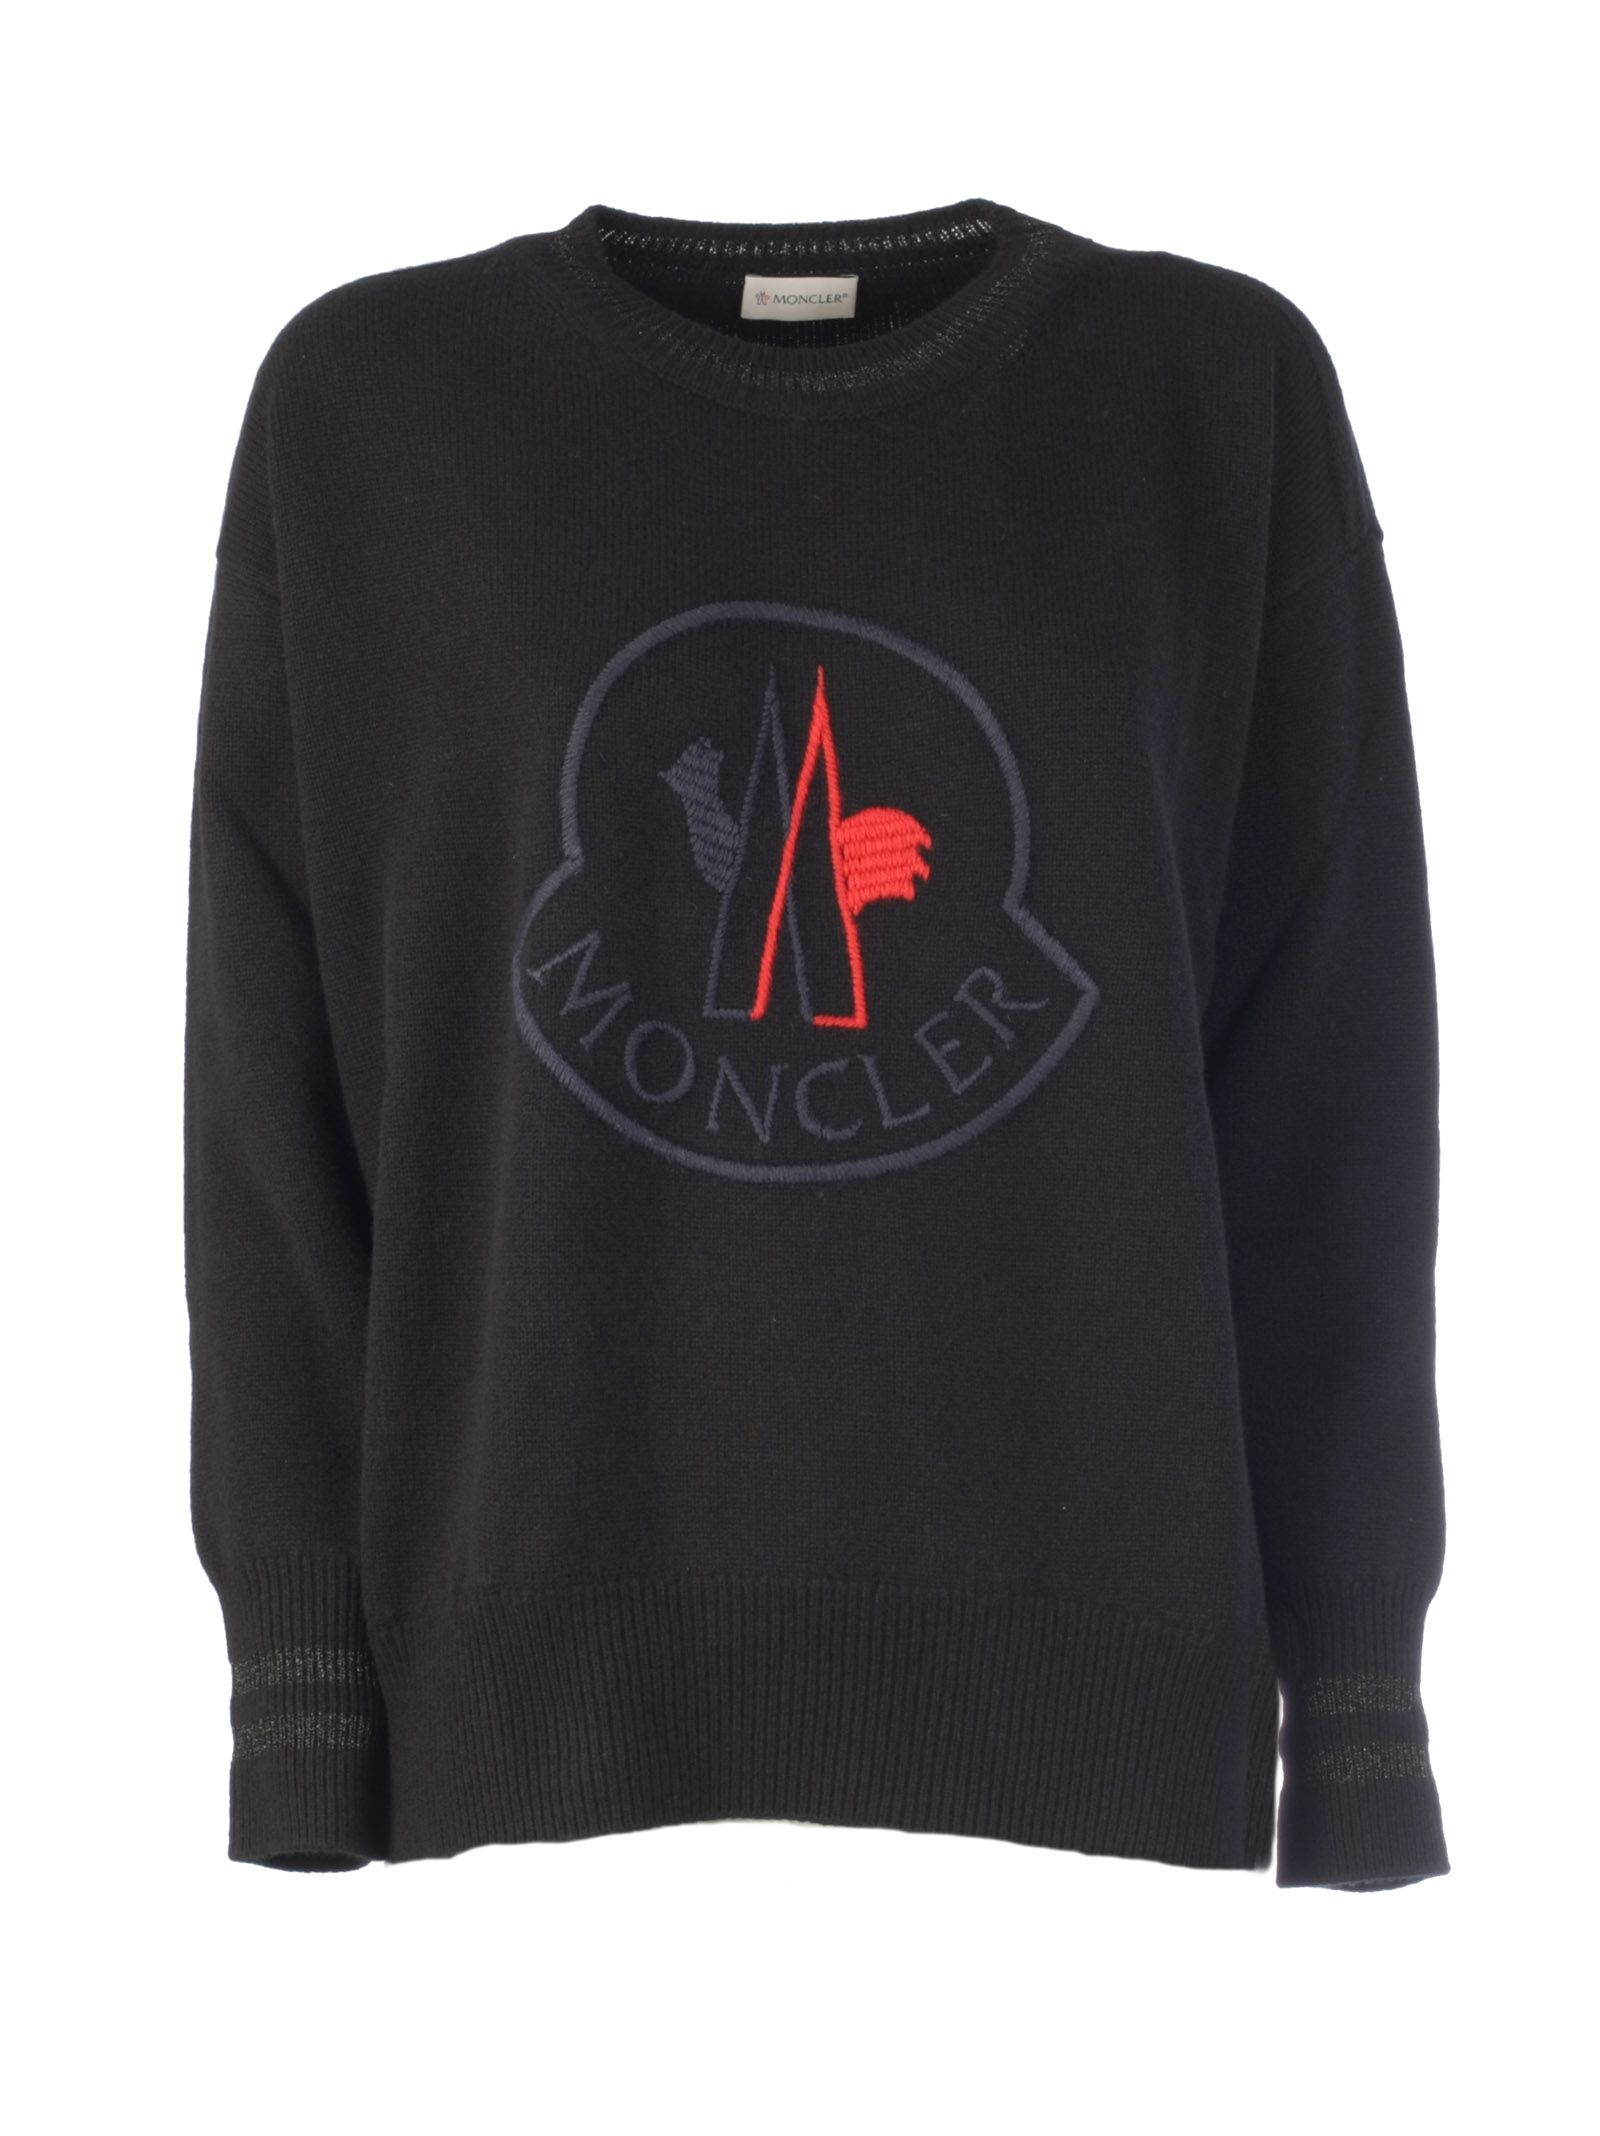 Moncler Clothing EMBROIDERED LOGO SWEATER